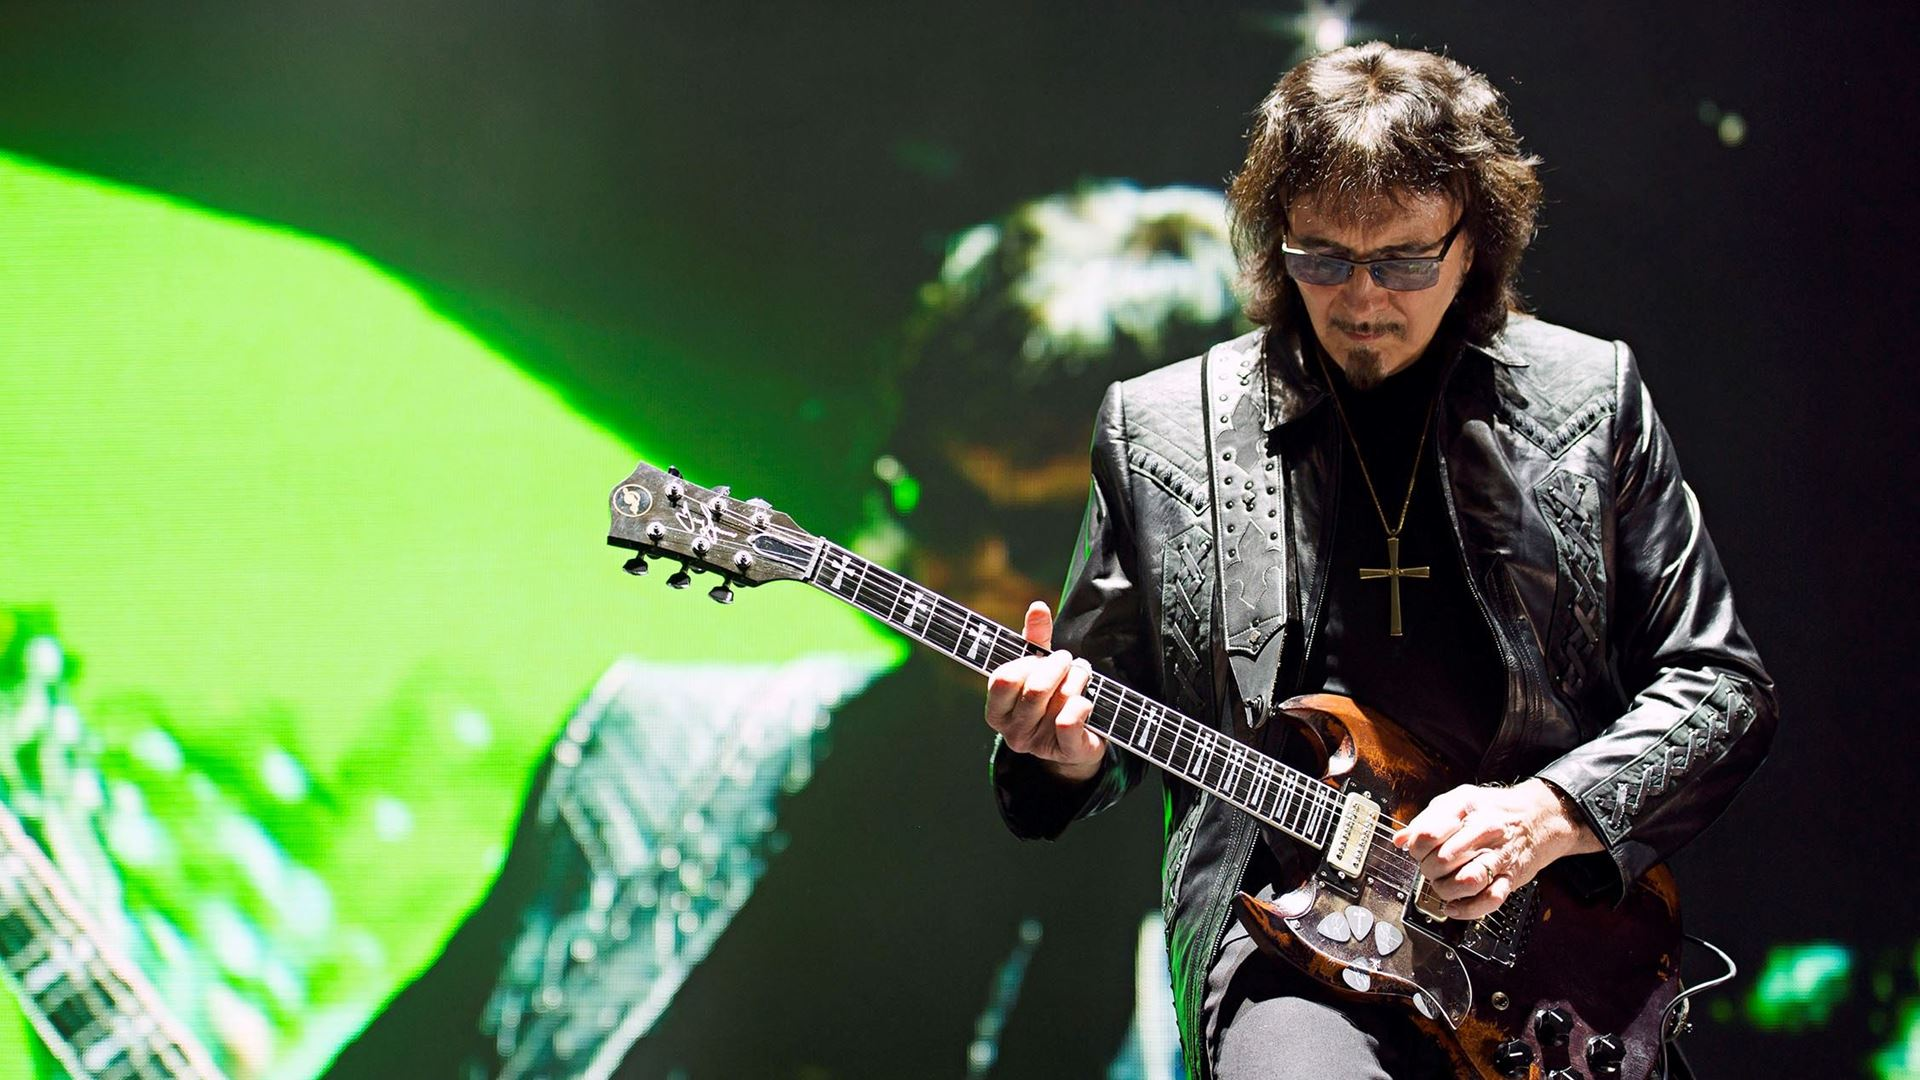 The link between Black Sabbath and Automobili Lamborghini: Rock legend Tony Iommi shares his passion for super sports cars from Sant'Agata Bolognese - Image 1